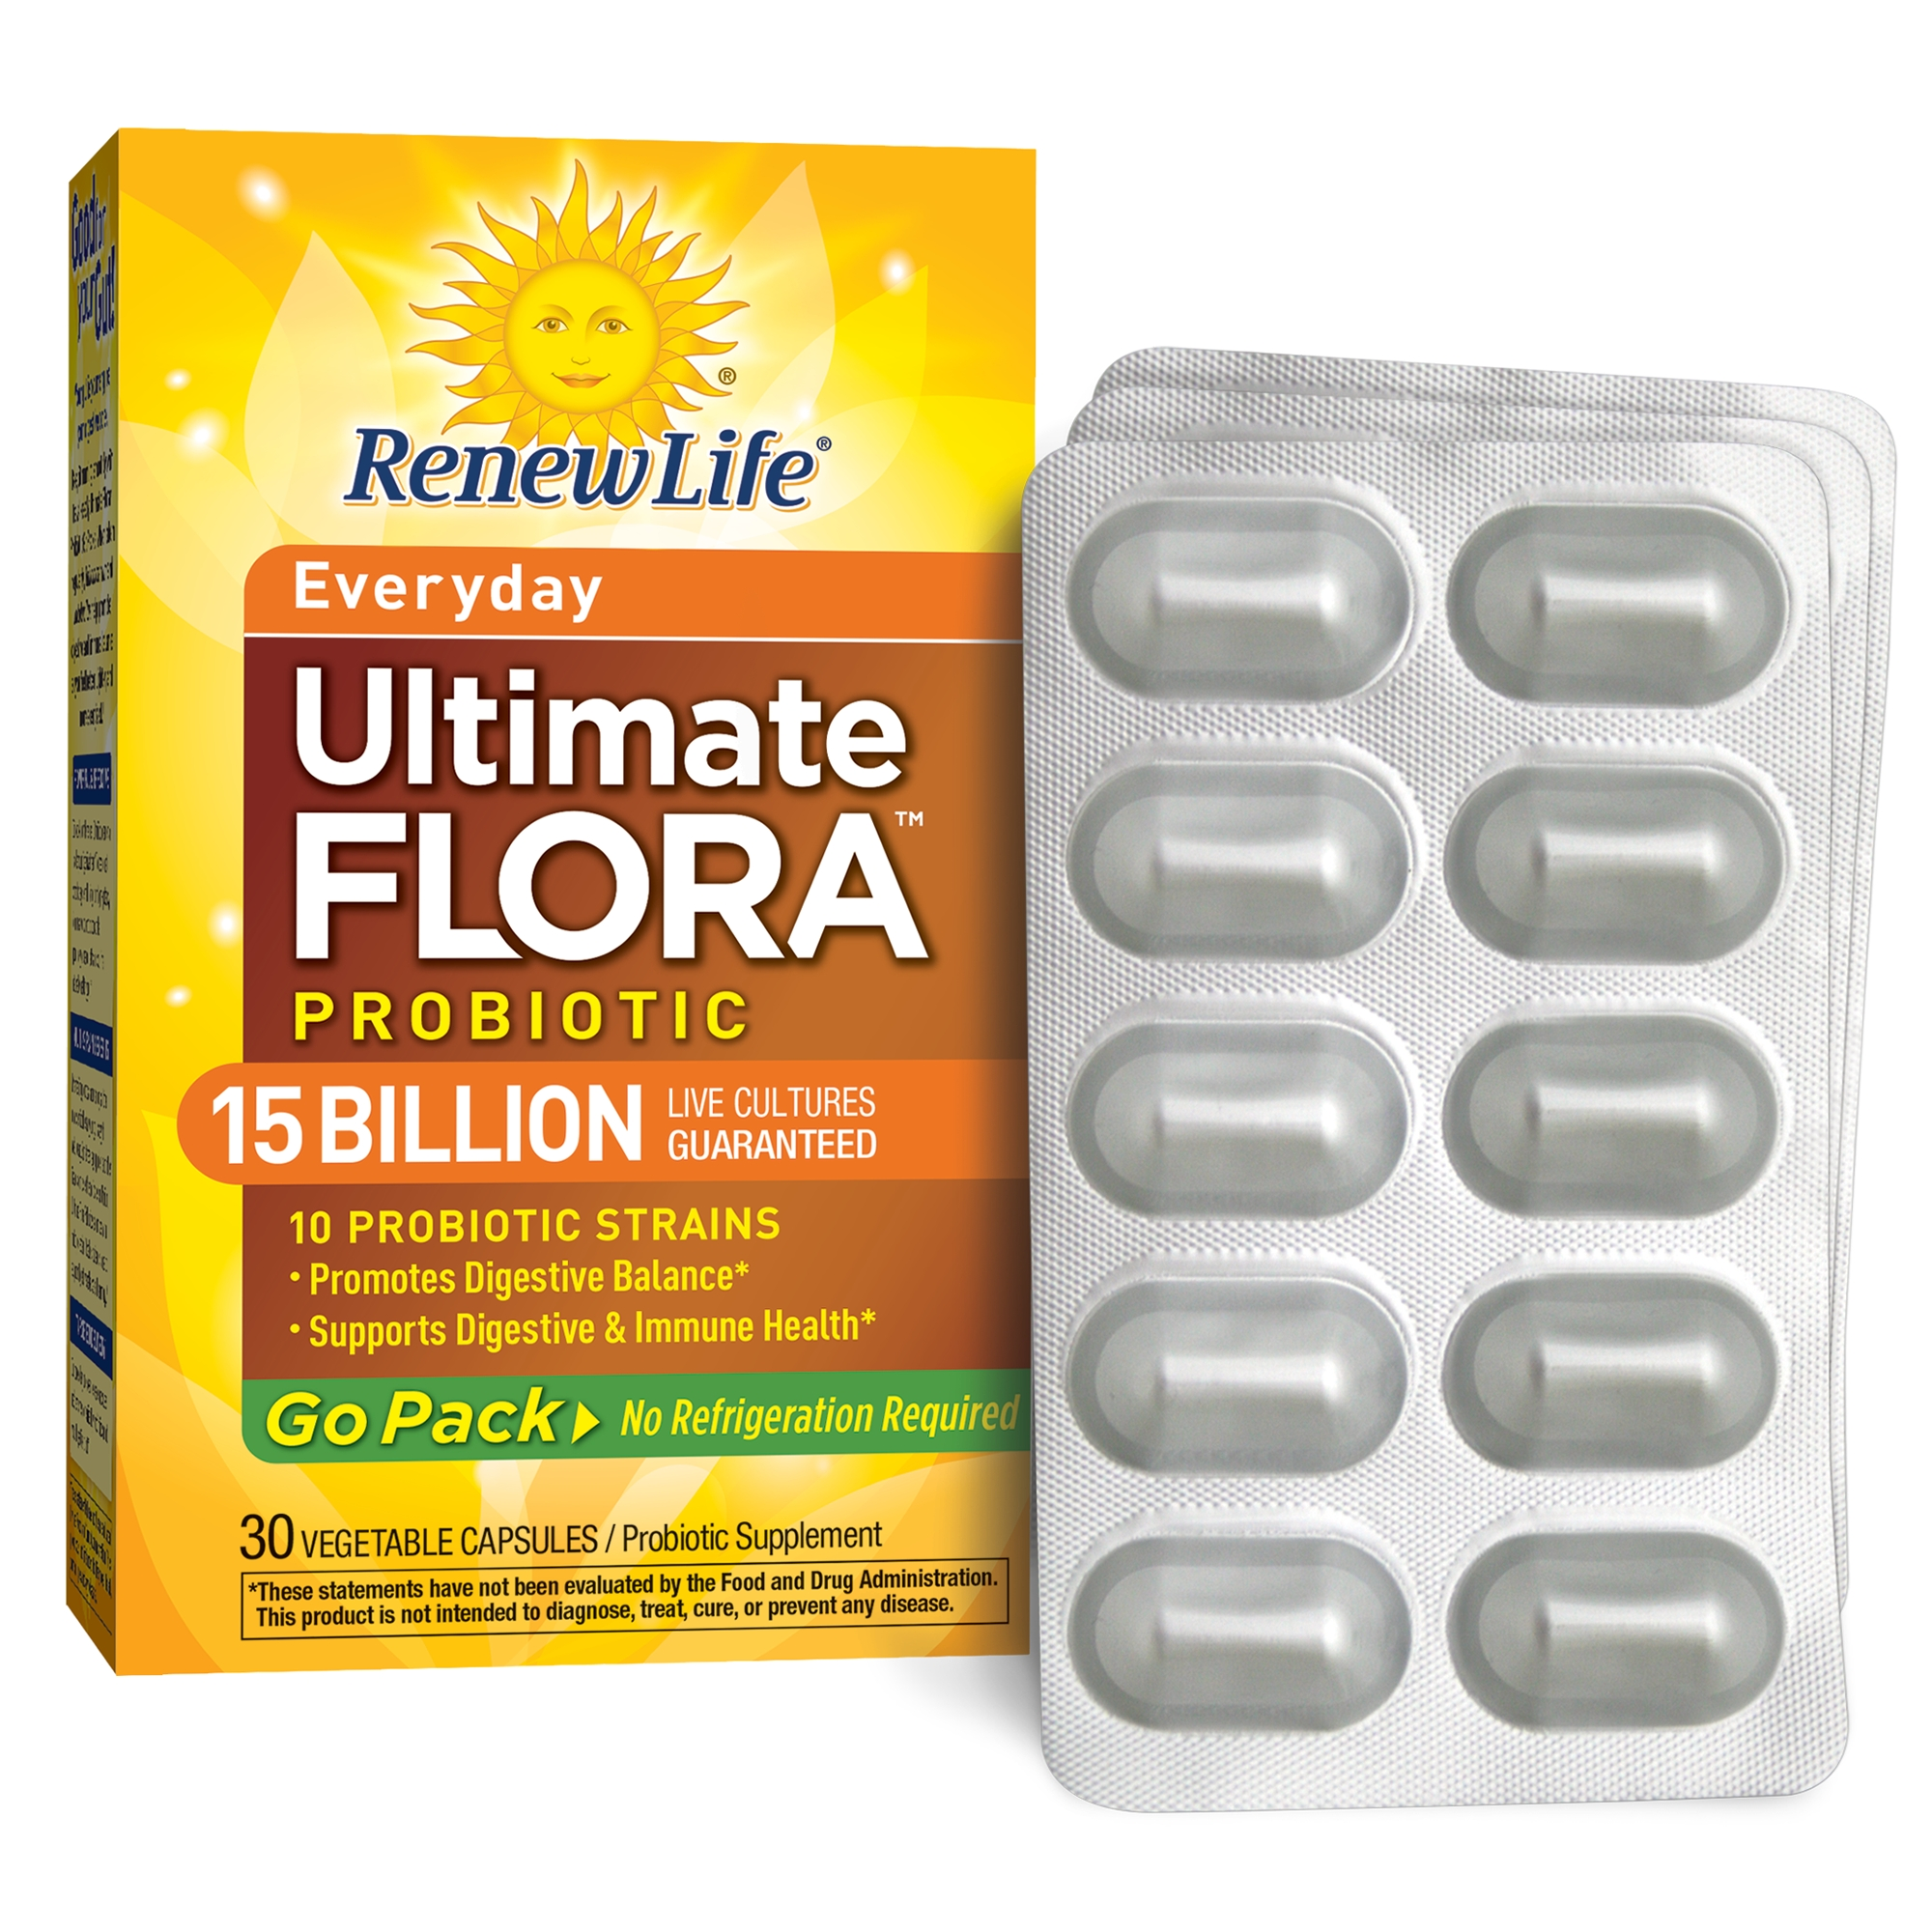 Renew Life - Ultimate Flora Probiotic Everyday - 15 billion - 30 vegetable capsules - Go Pack